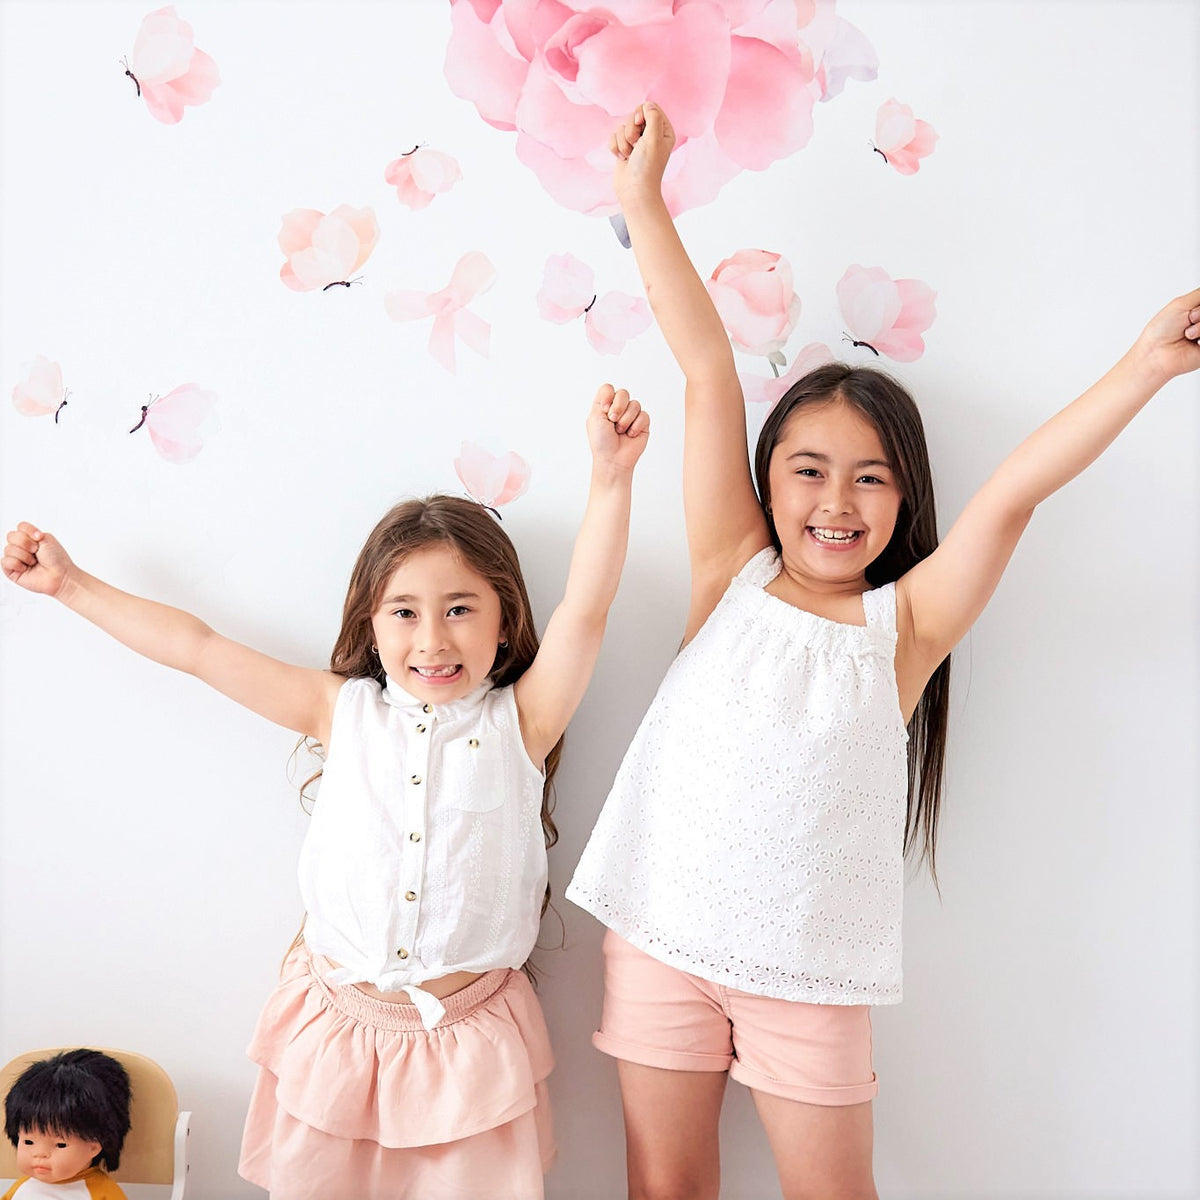 Two young girls are standing with their hands in the air with a white wall behind them. large floral pink wall decals and butterfly decals are behind them on the wall. A doll with black hair is sitting in a highchair next to the youngest girl.